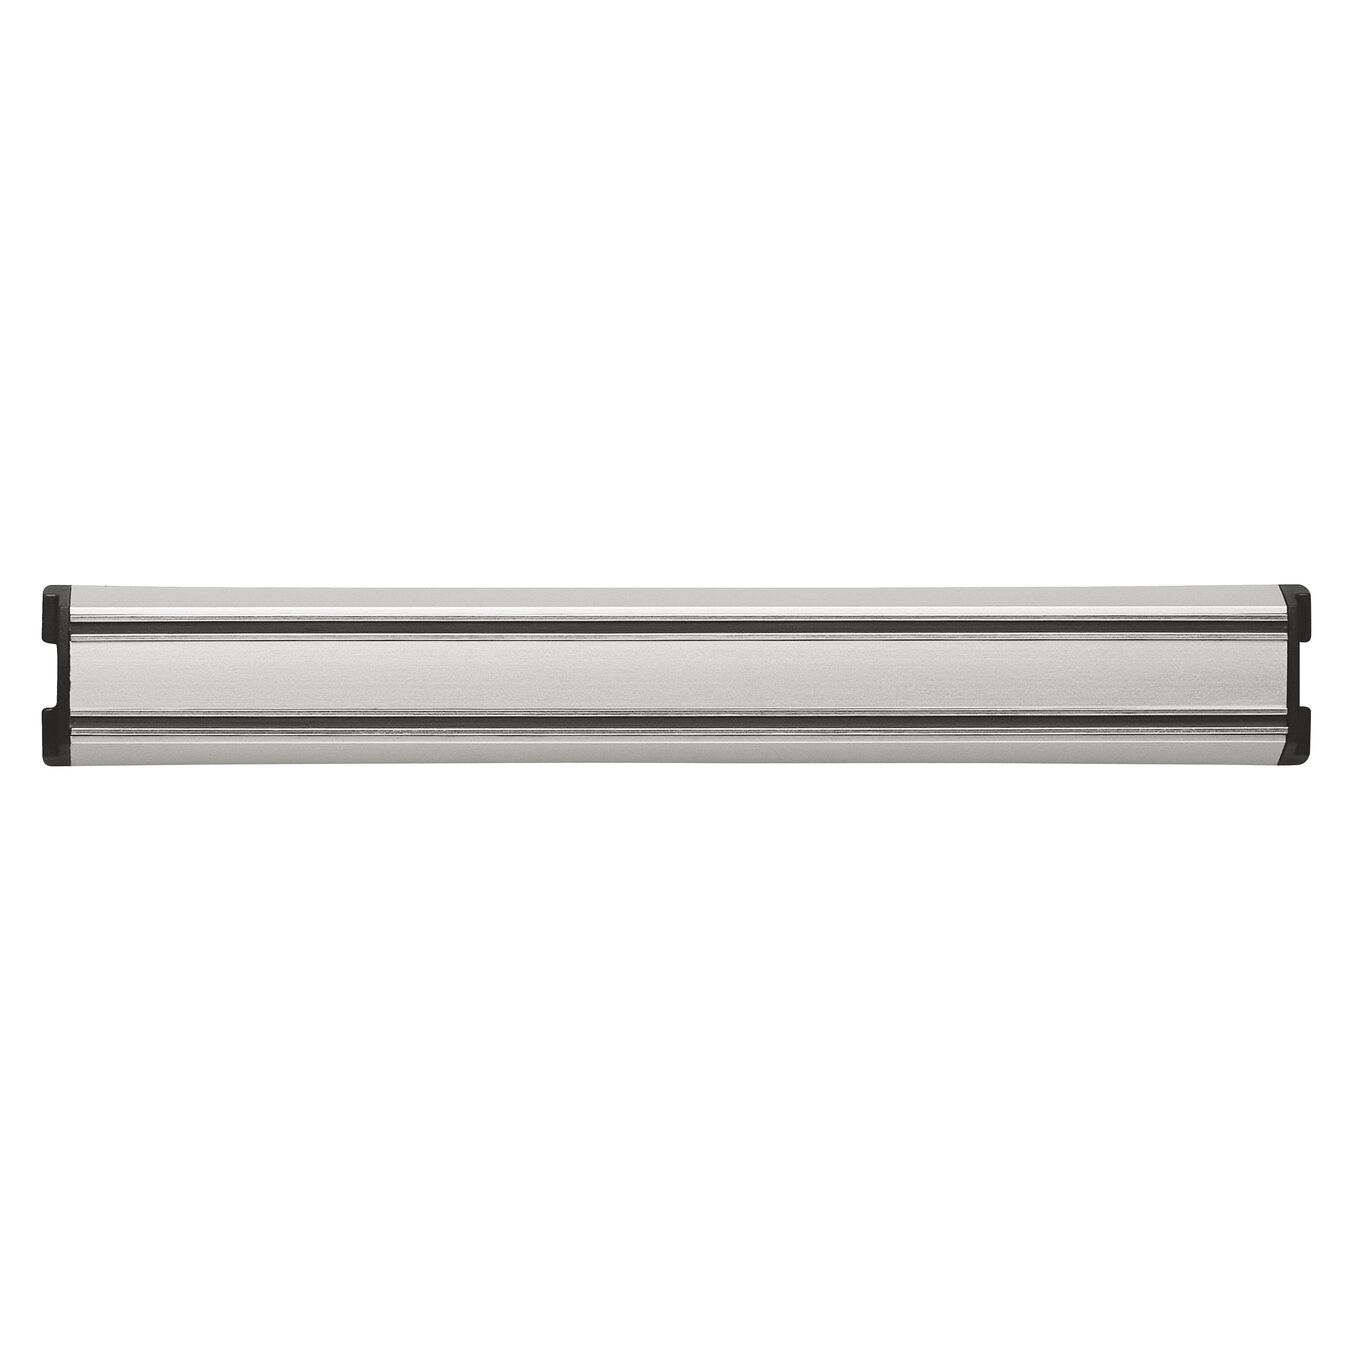 11.5-inch Magnetic Knife Bar - Silver,,large 1